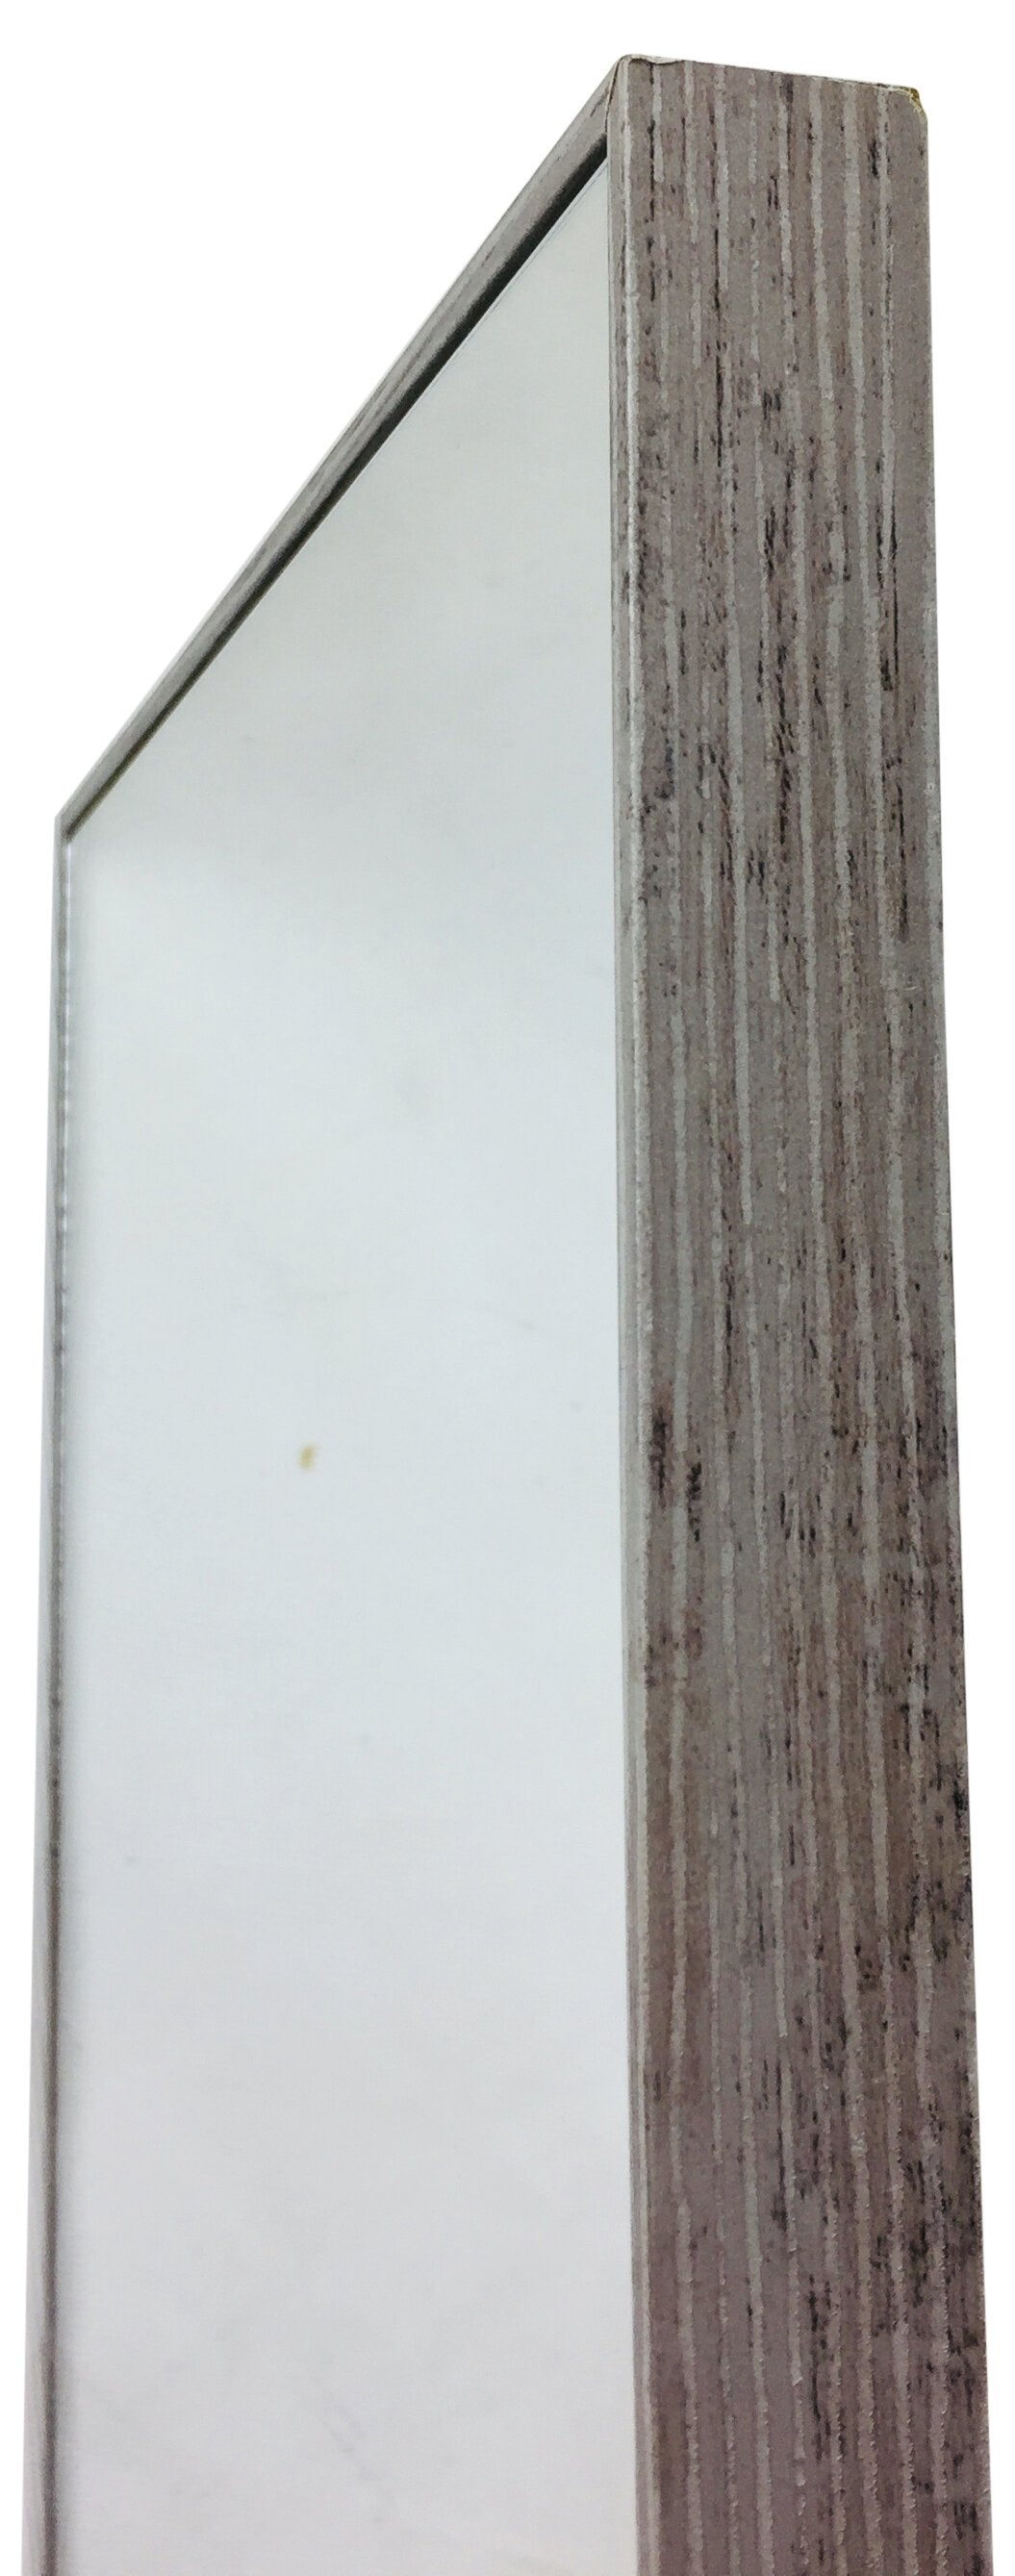 Grey Wood Wall Mirror 121cm